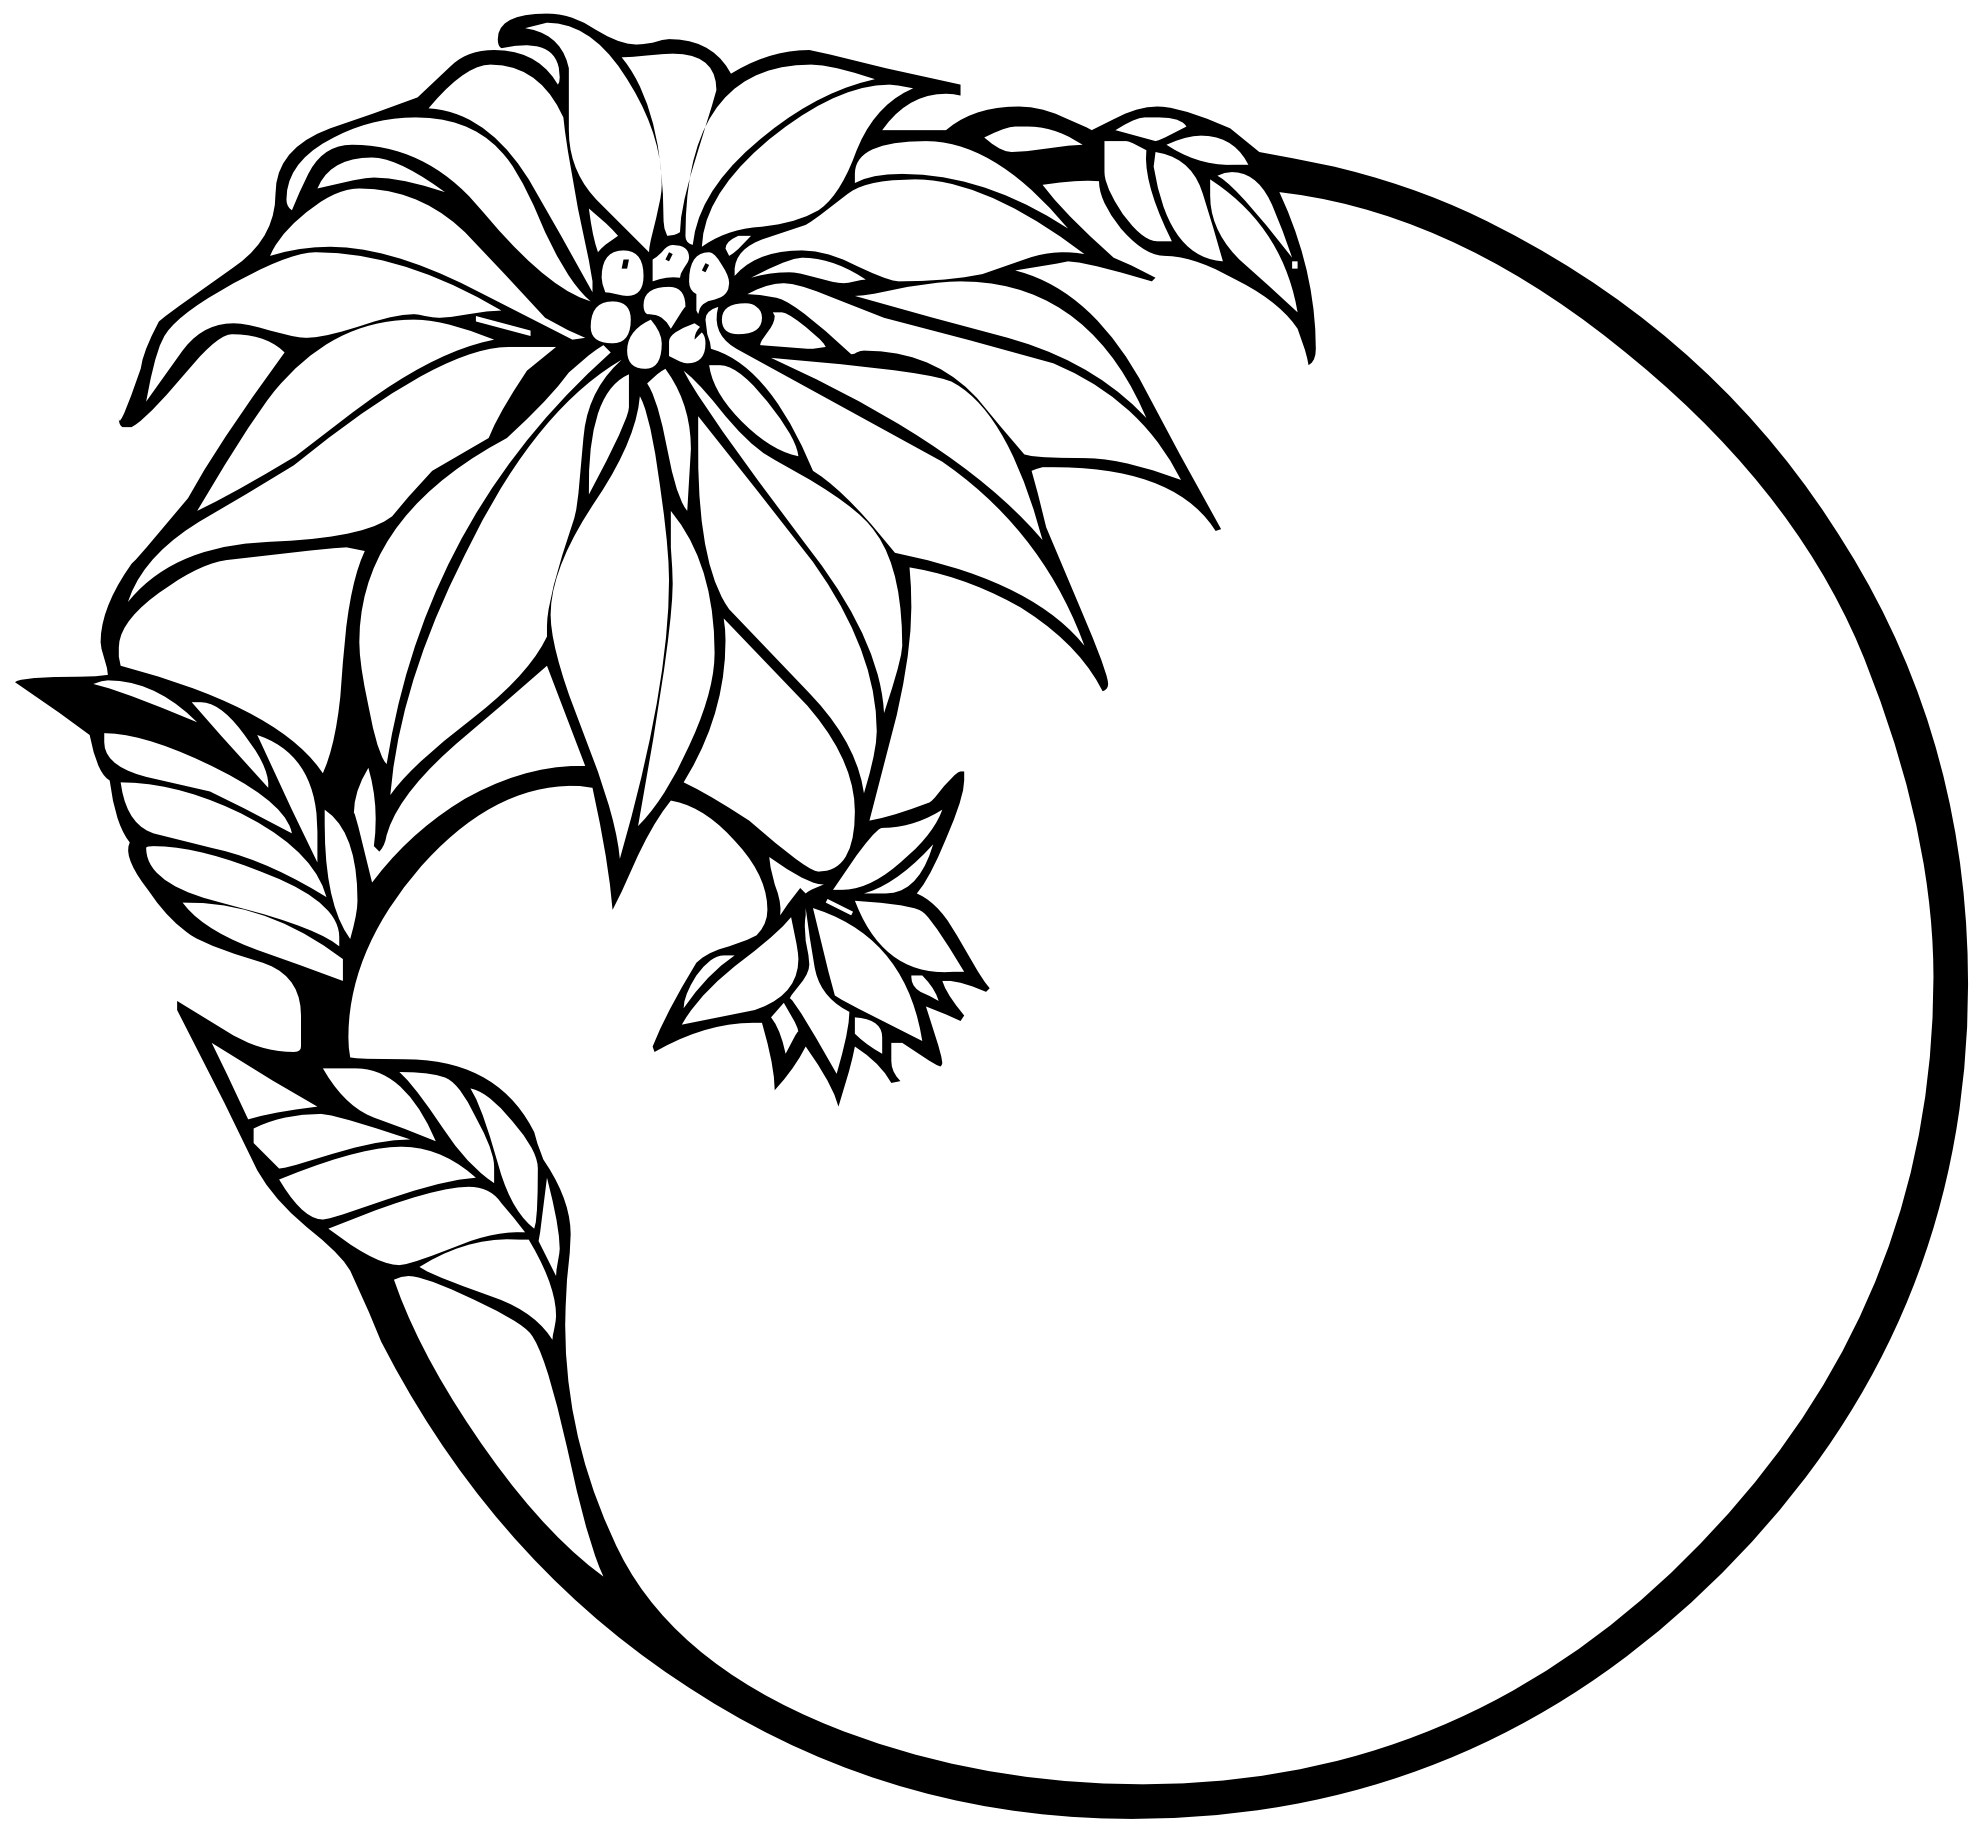 Floral Art Line Design : Flower line art clipart best